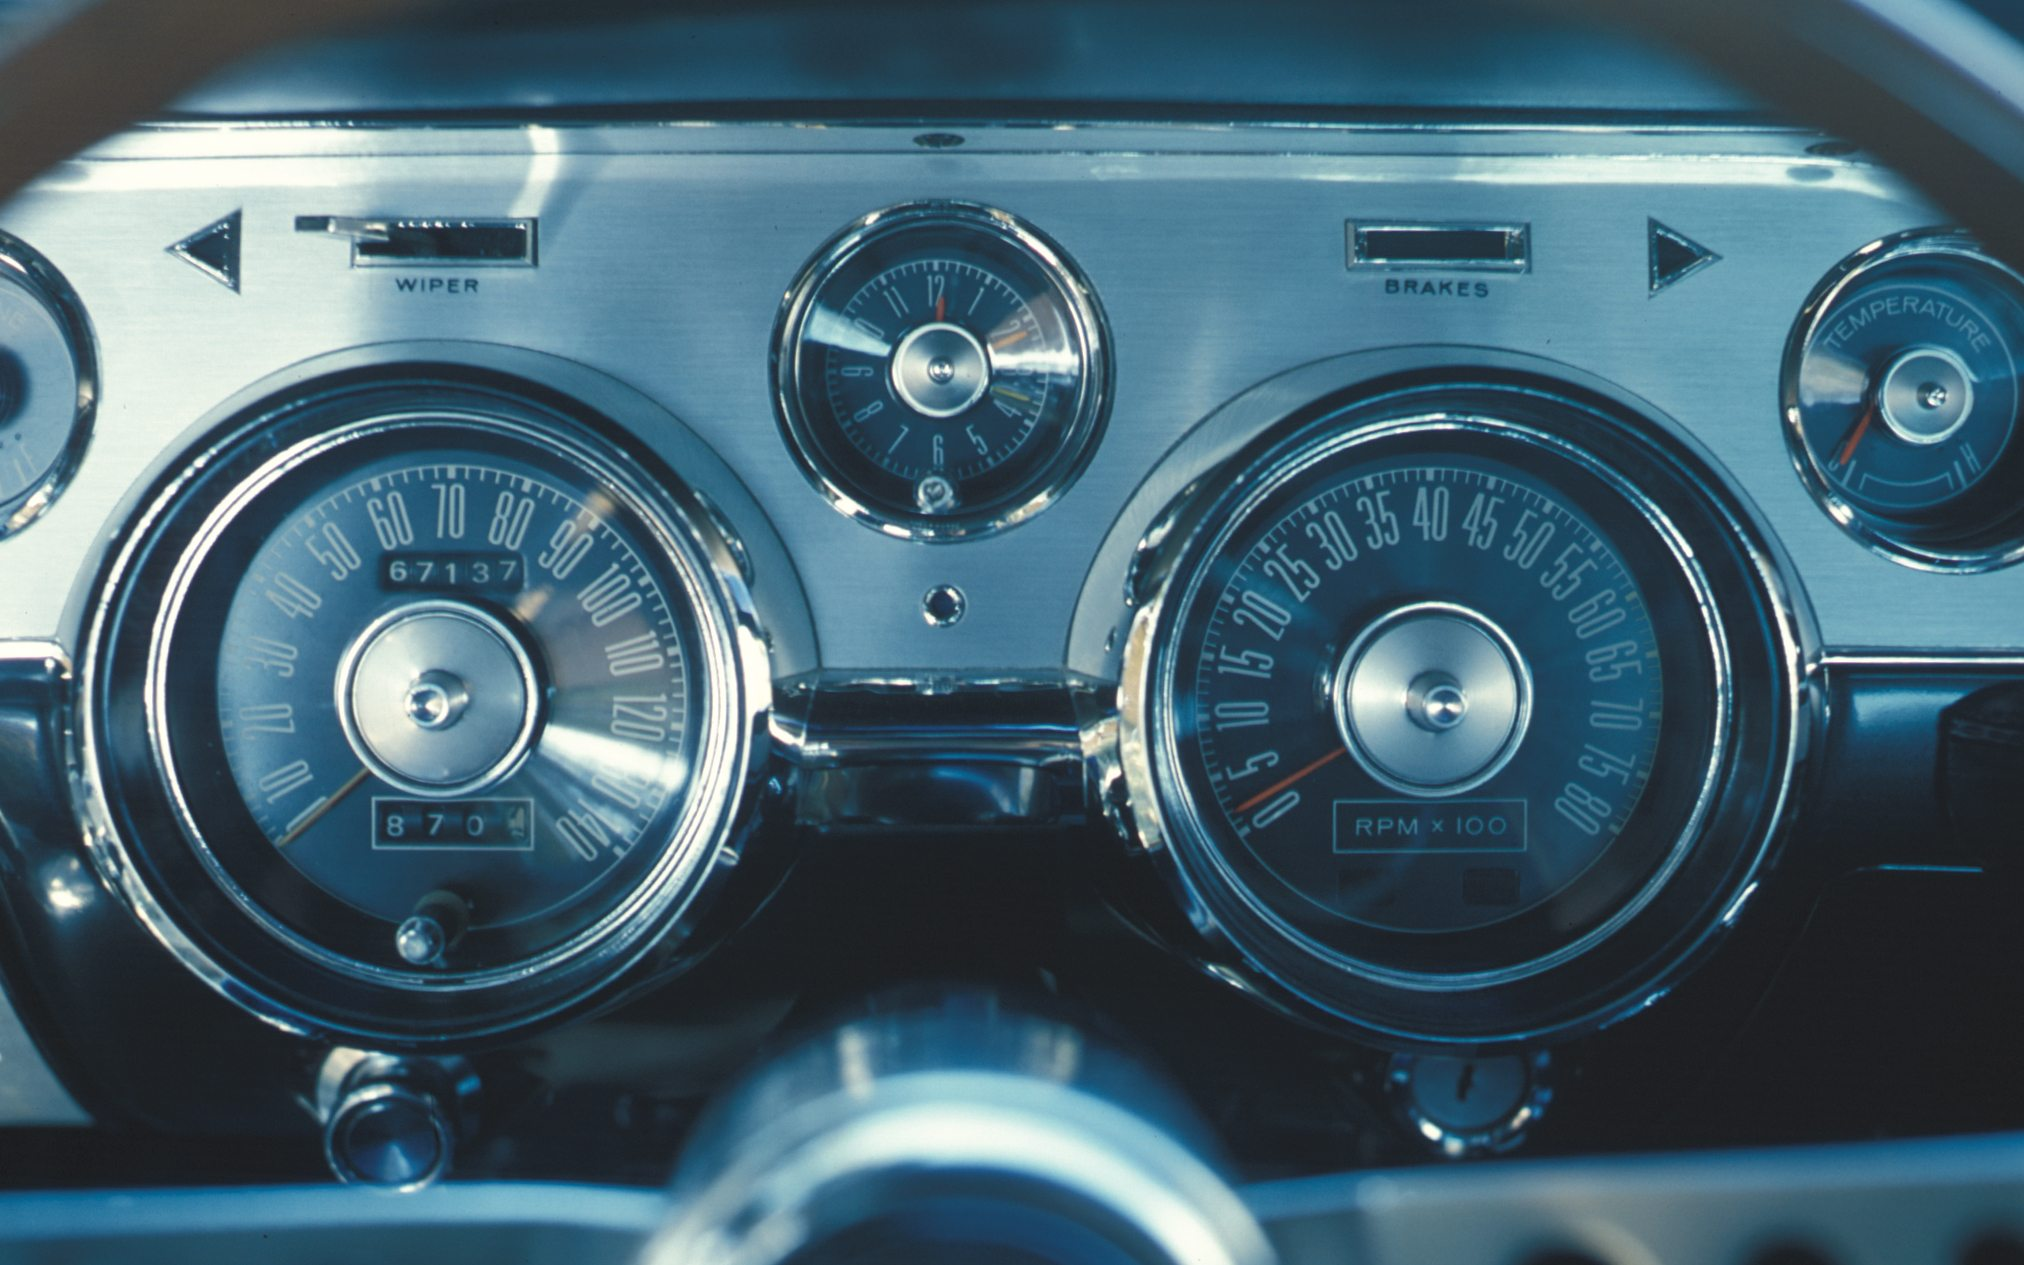 1967 Shelby GT350 Instrument Cluster